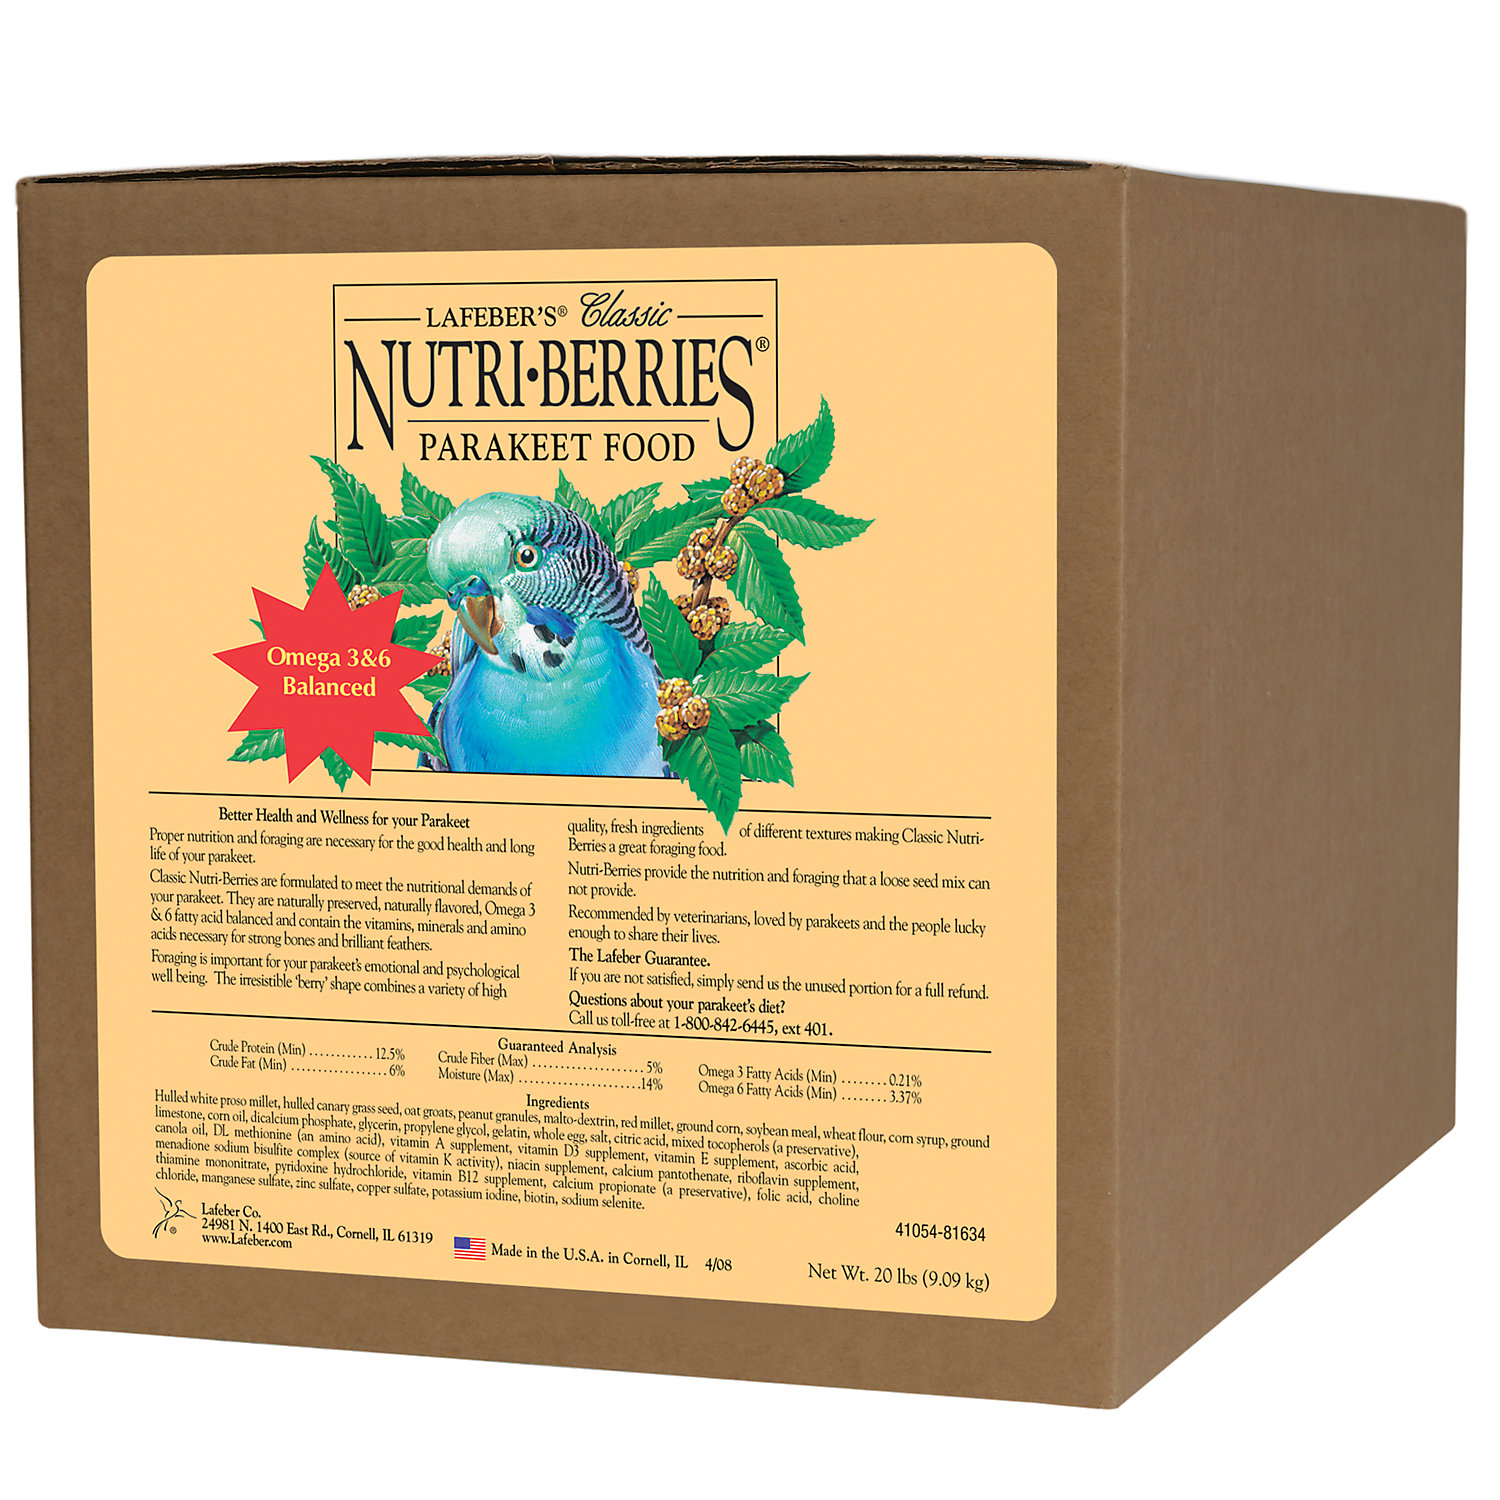 Lafebers Keet NutriBerries